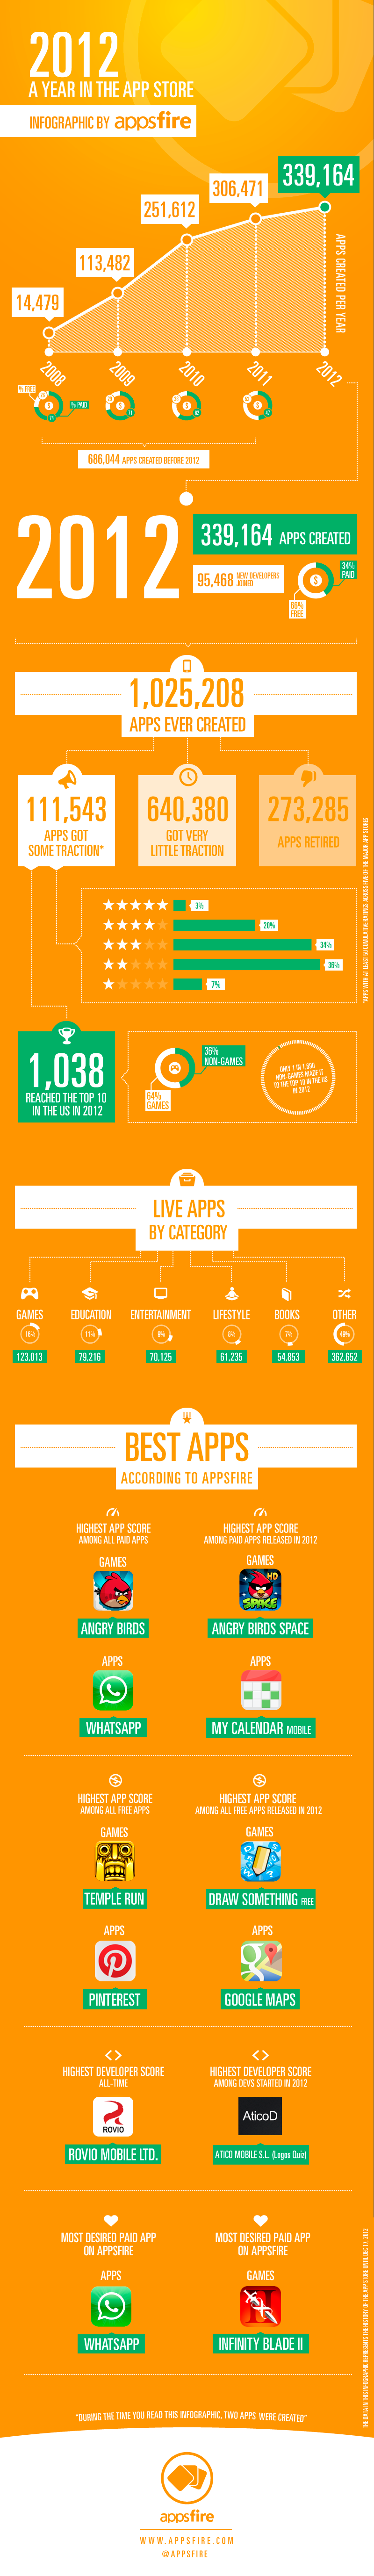 Infographic: A Quick Peek Into The 2012 App Store